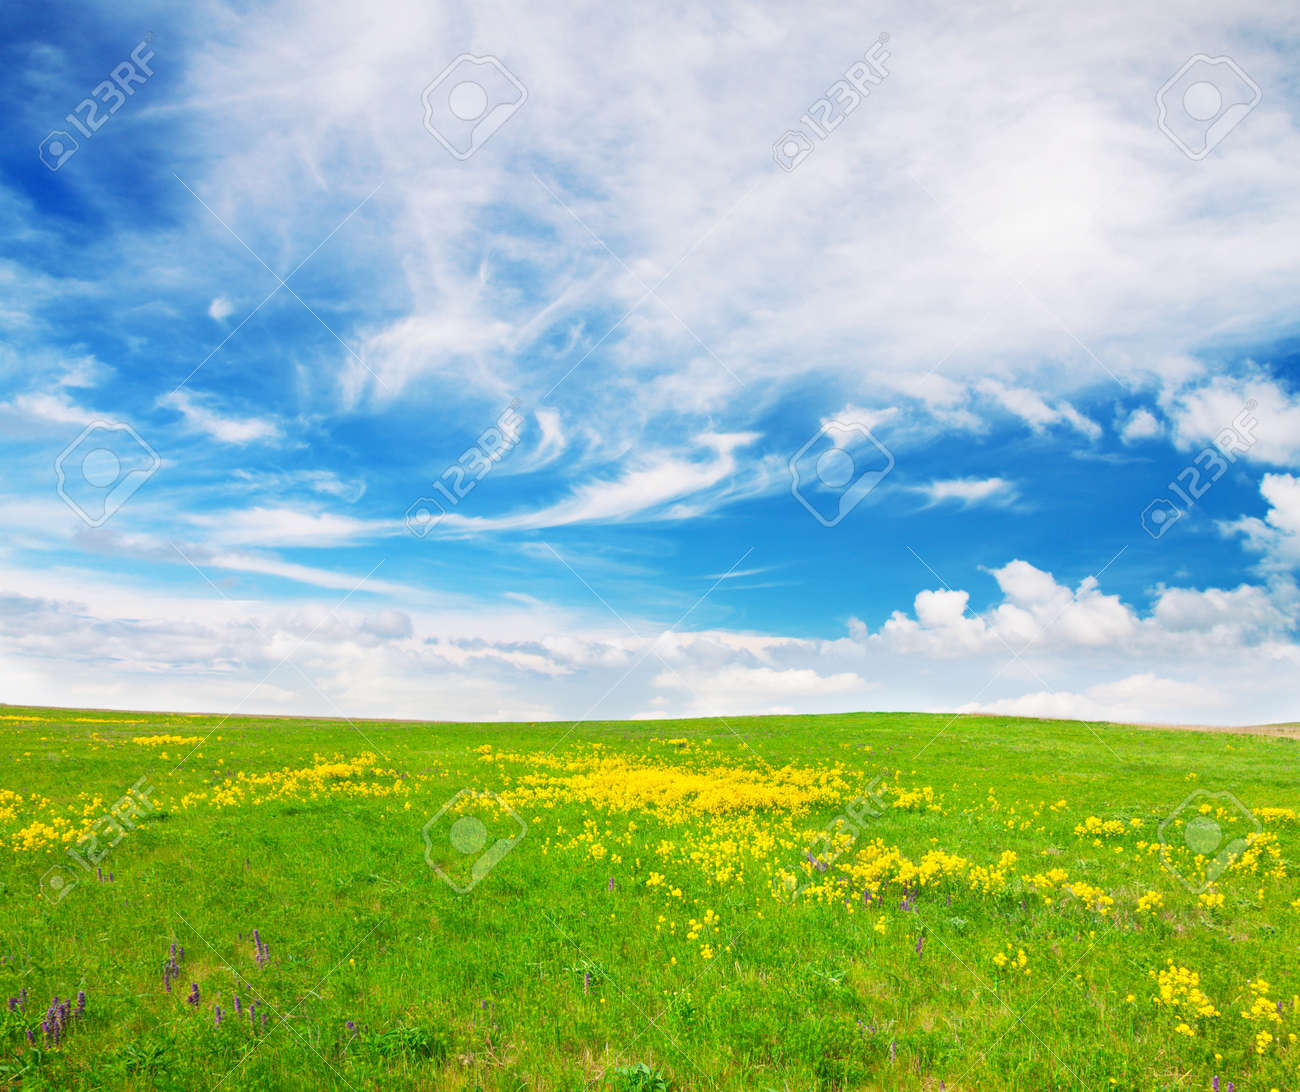 Green field with flowers under blue cloudy sky Stock Photo - 8645769